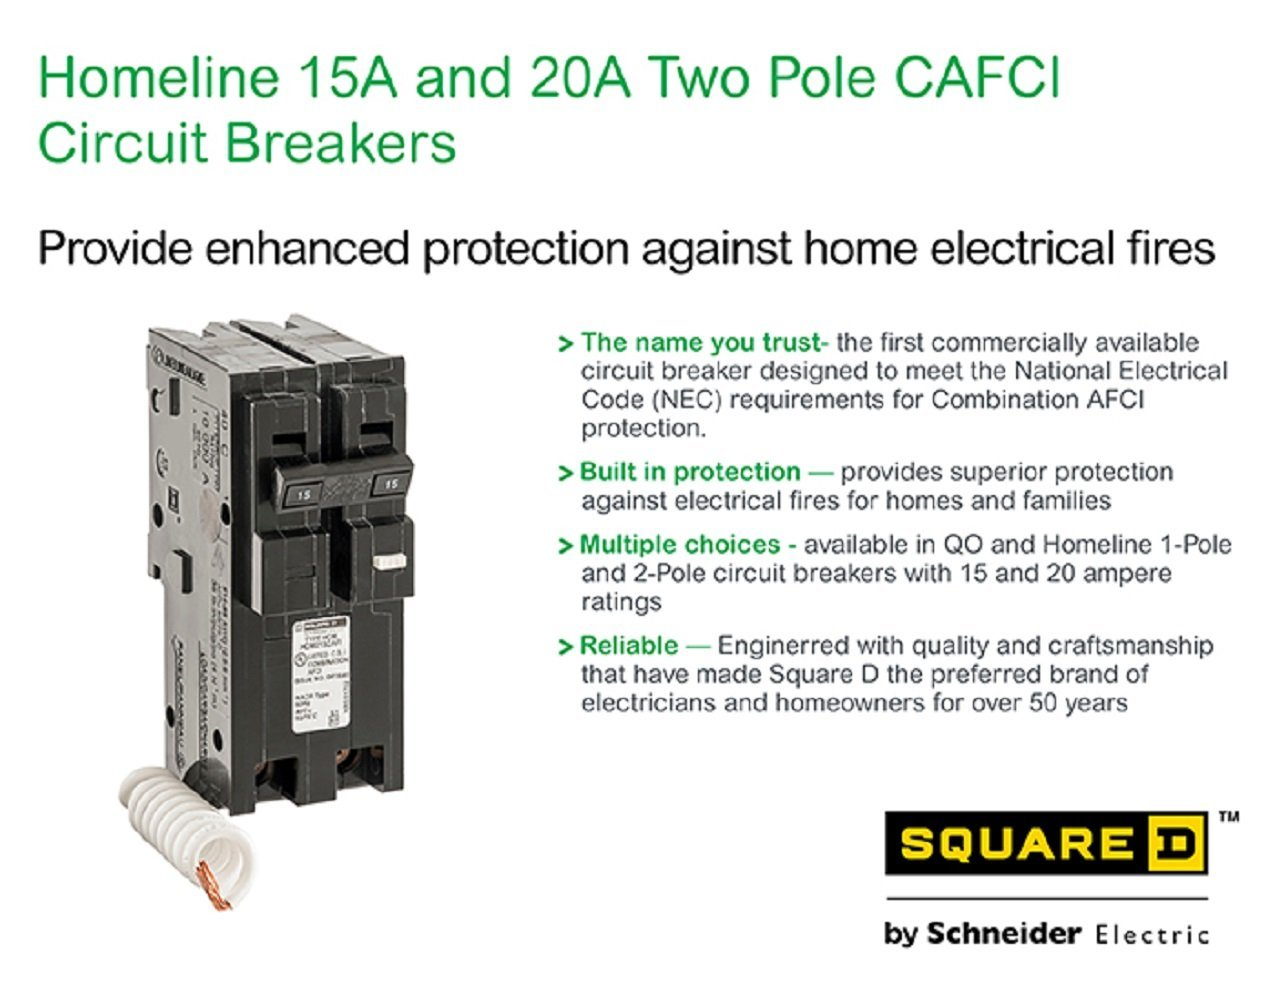 Square D By Schneider Electric Hom220cafic Homeline 20 Amp Two Pole Double Single Throw Switch Alfrescoheatingcom Cafci Circuit Breaker